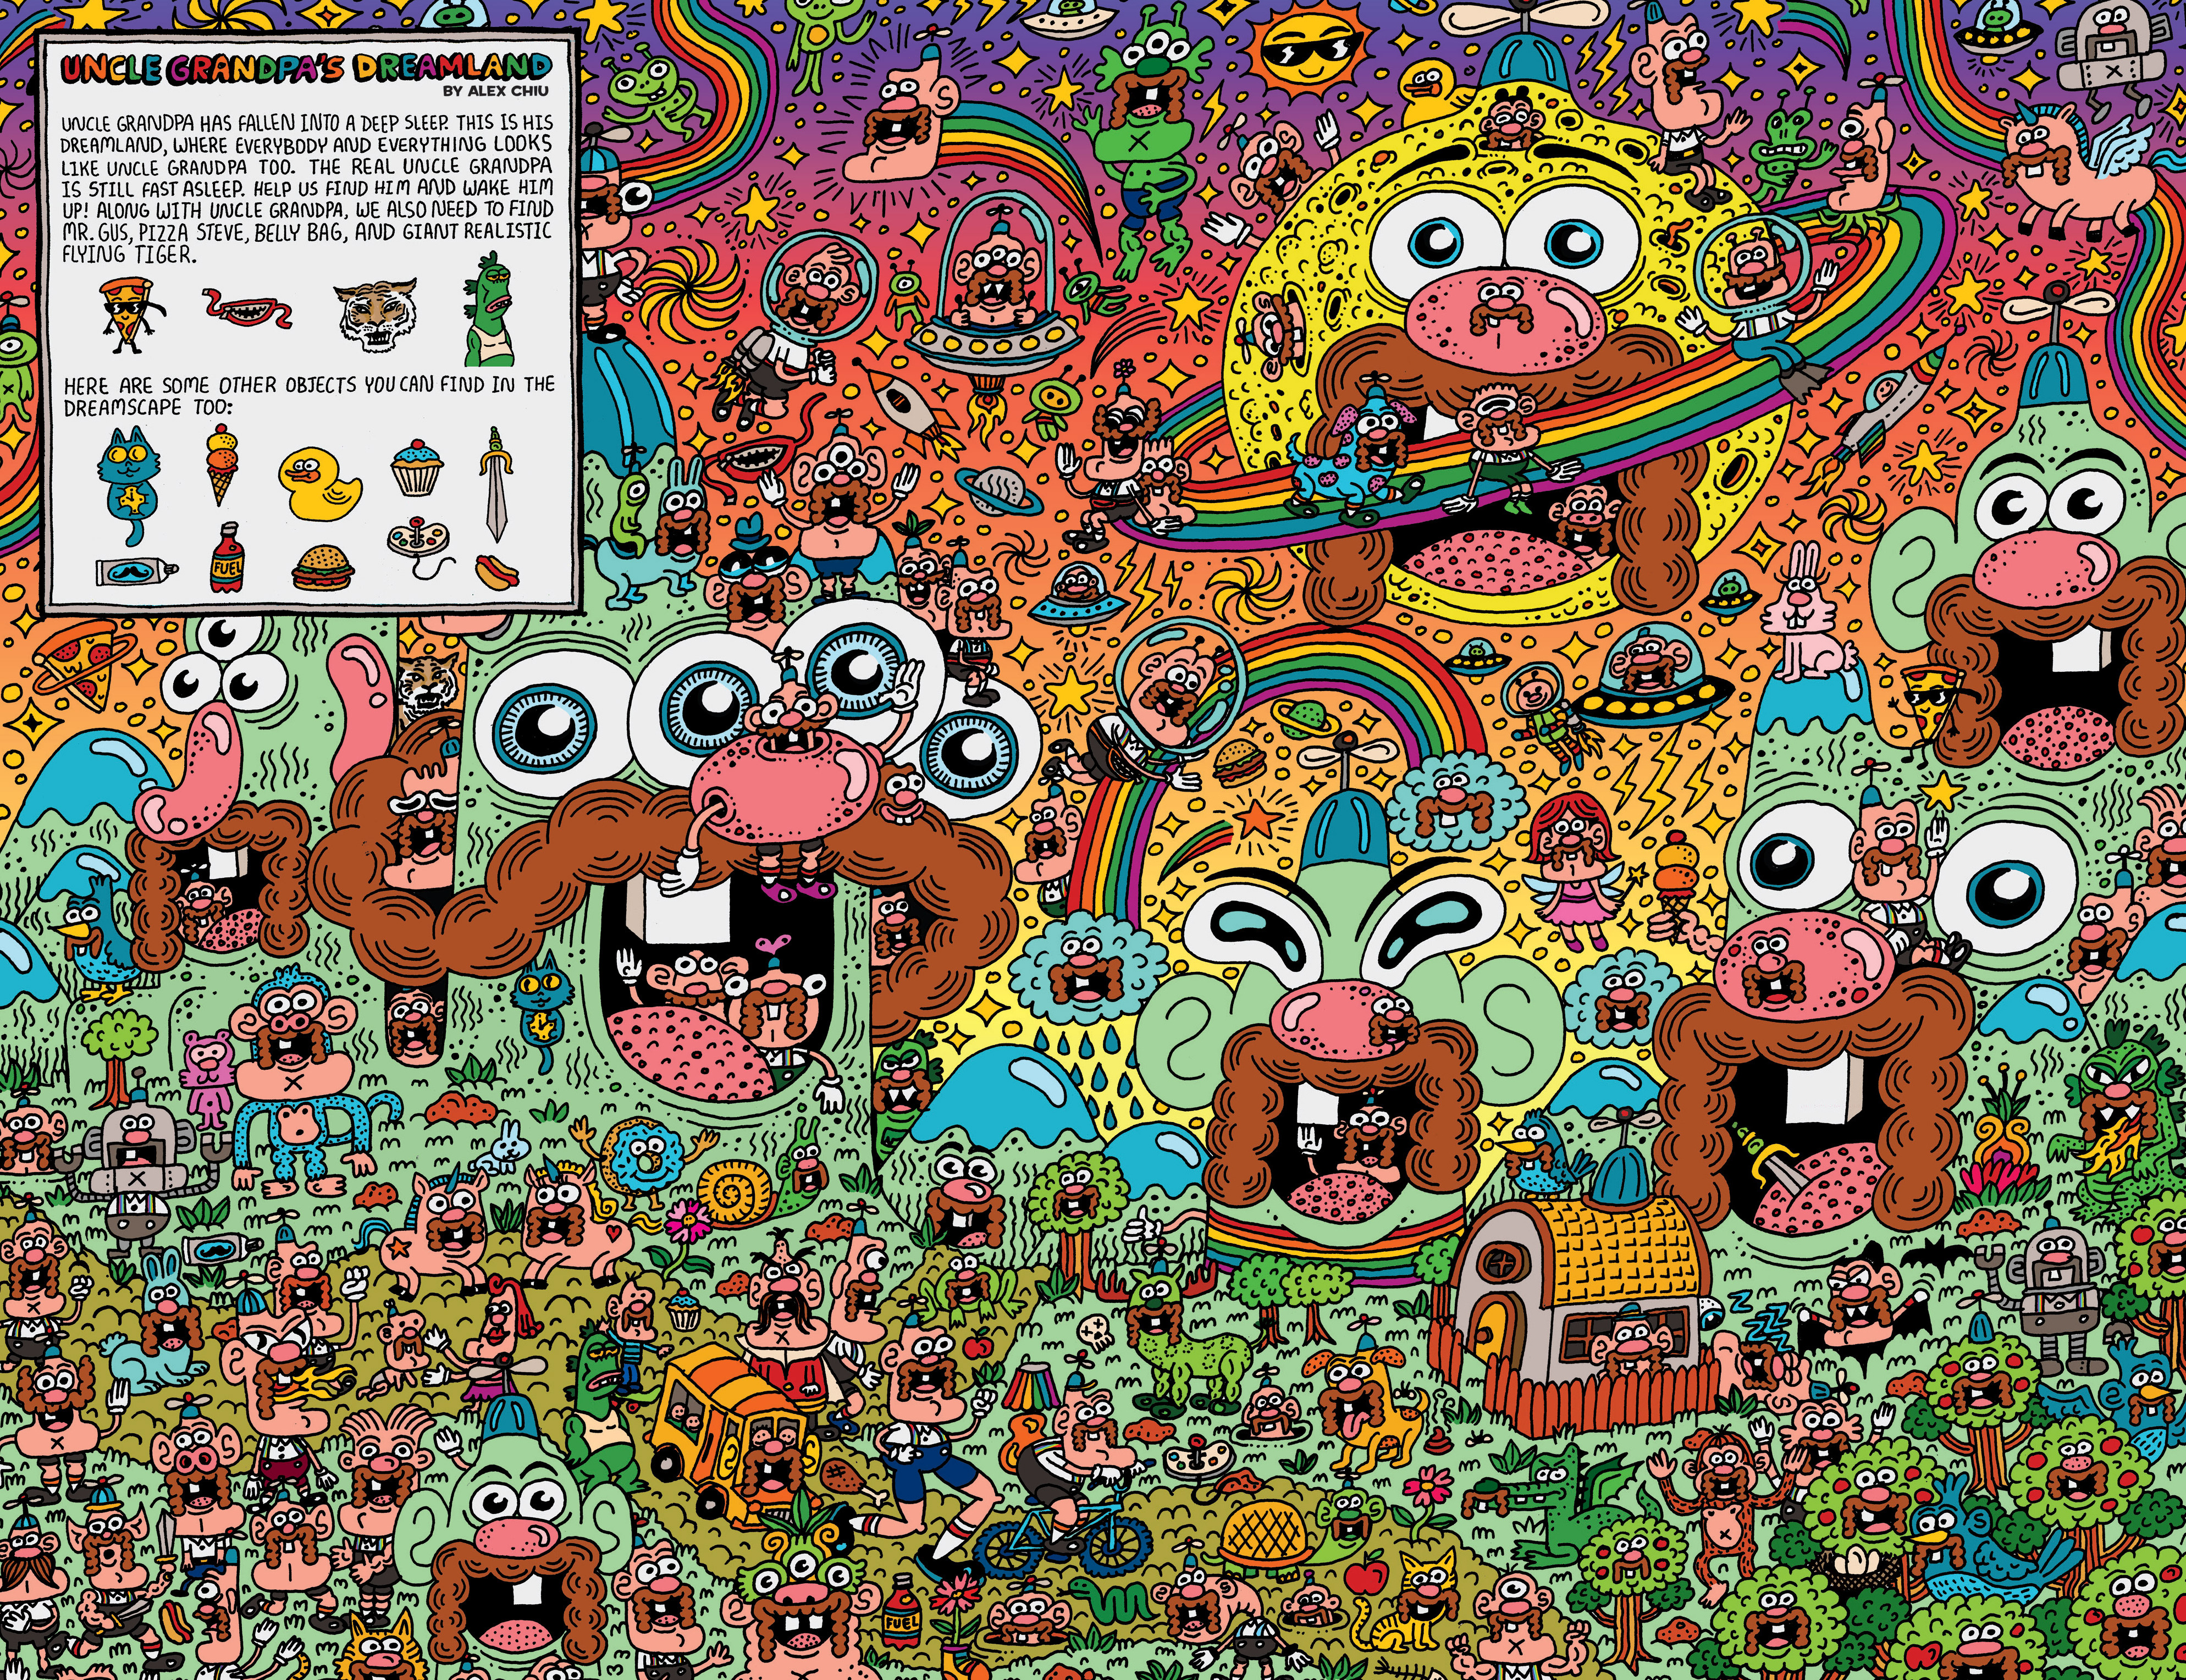 Read online Uncle Grandpa comic -  Issue #3 - 8